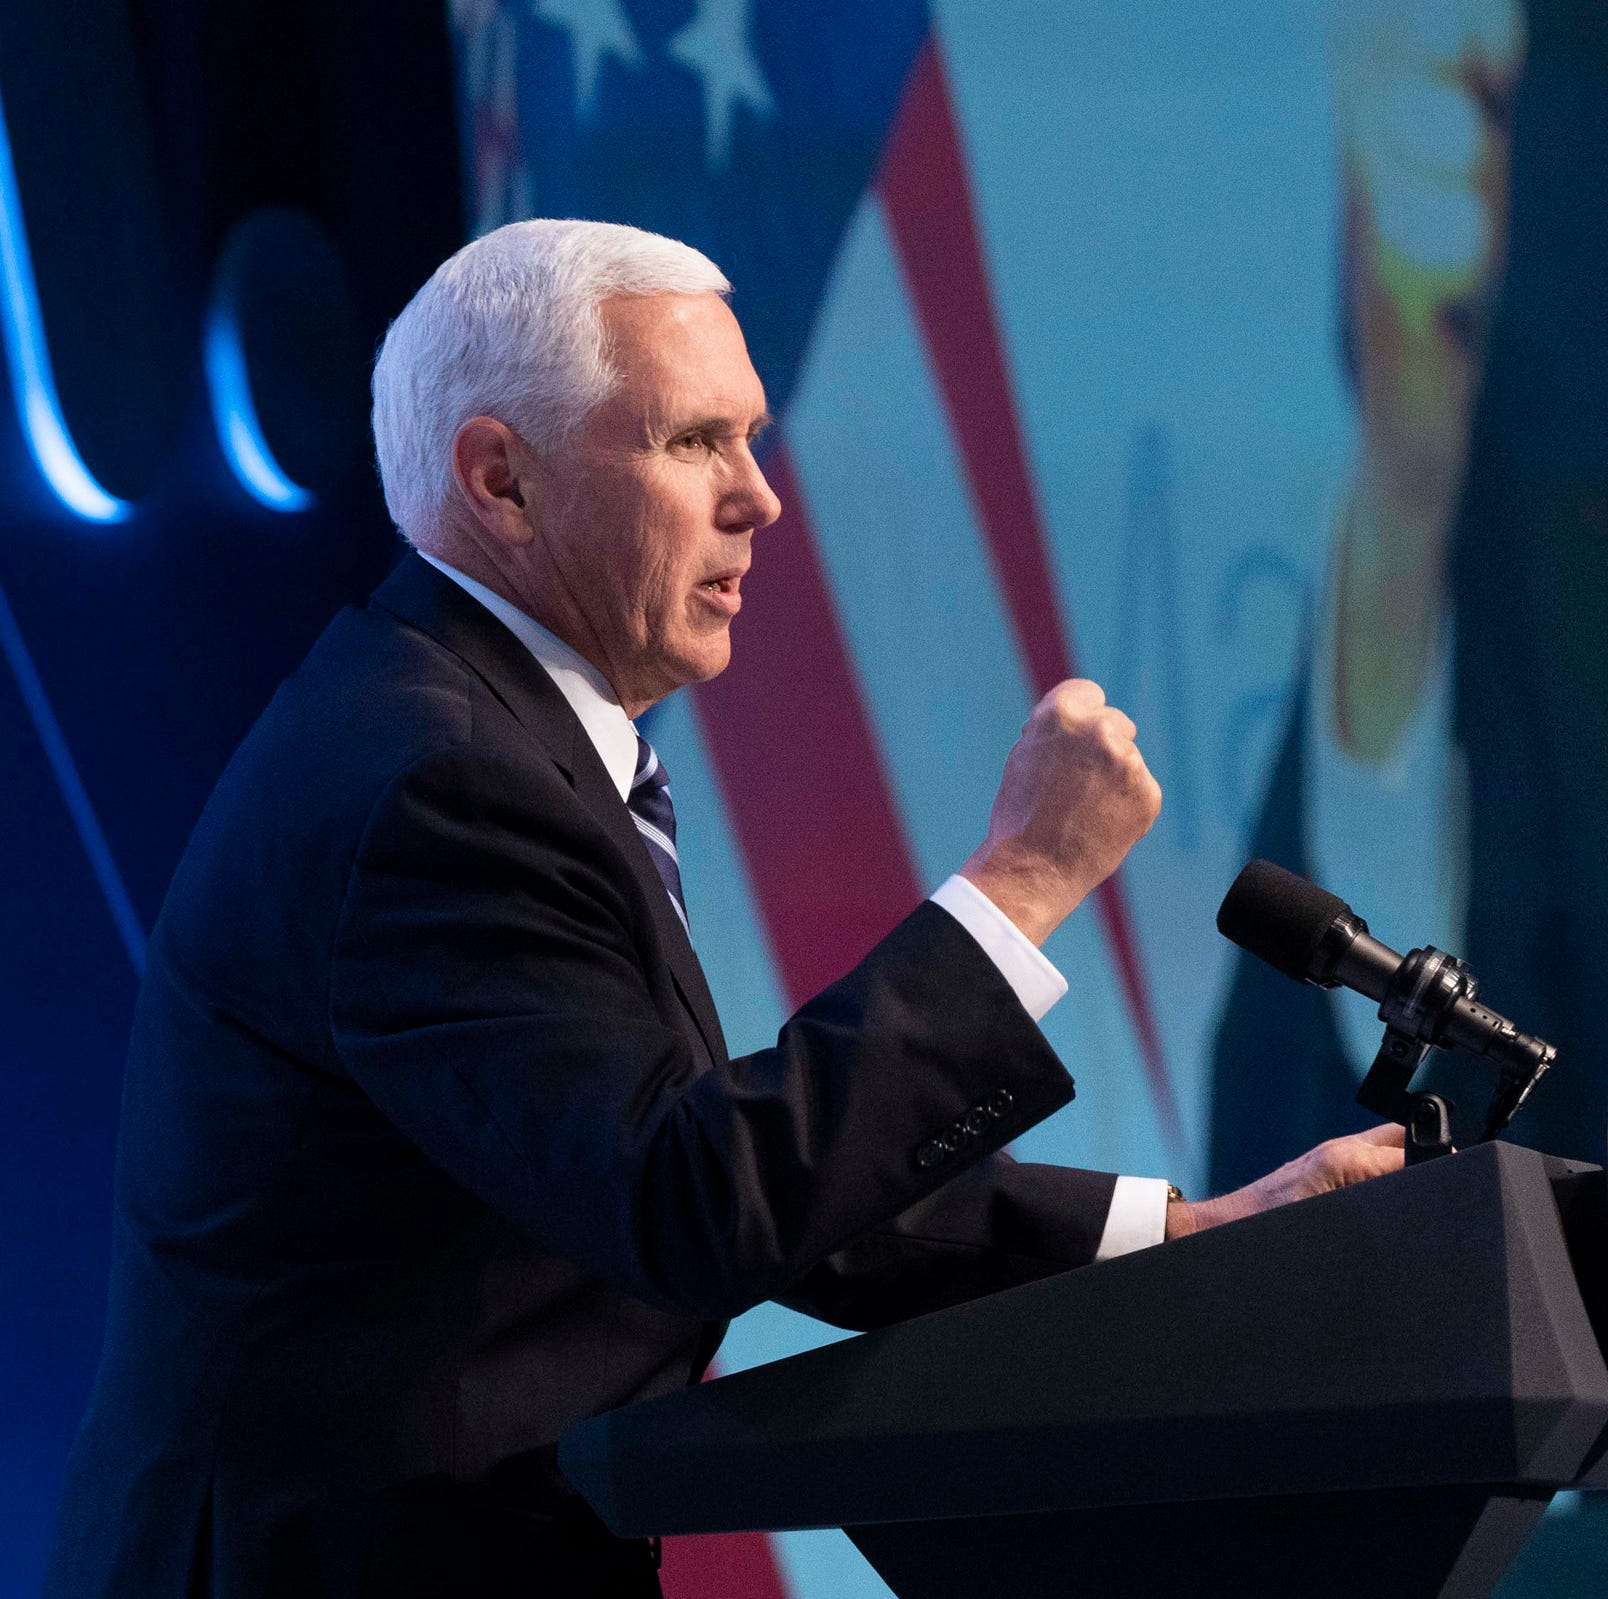 Vice President Mike Pence touts Trump's economic accomplishments during Phoenix stop